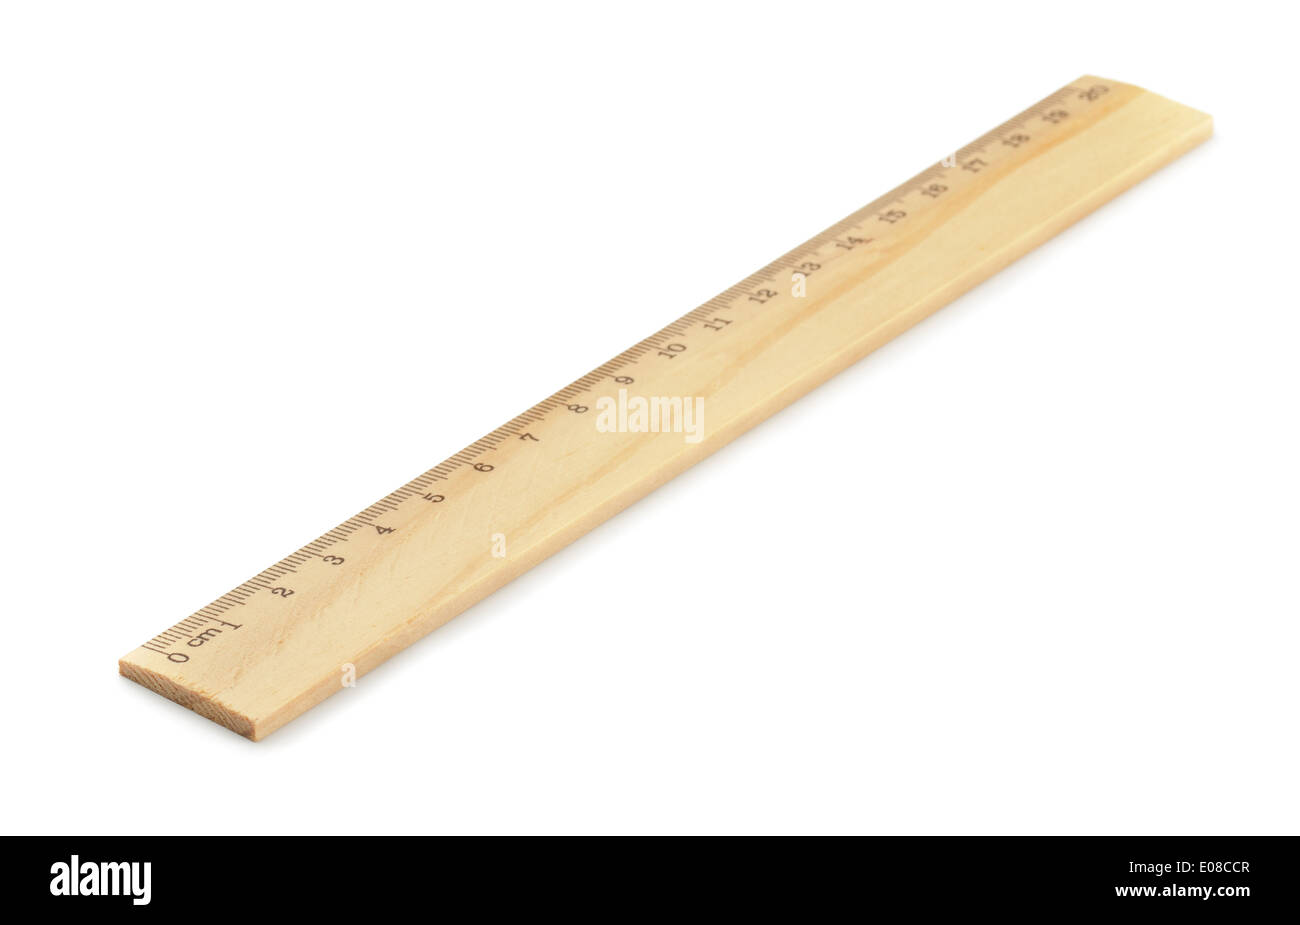 Wooden ruler isolated on white - Stock Image